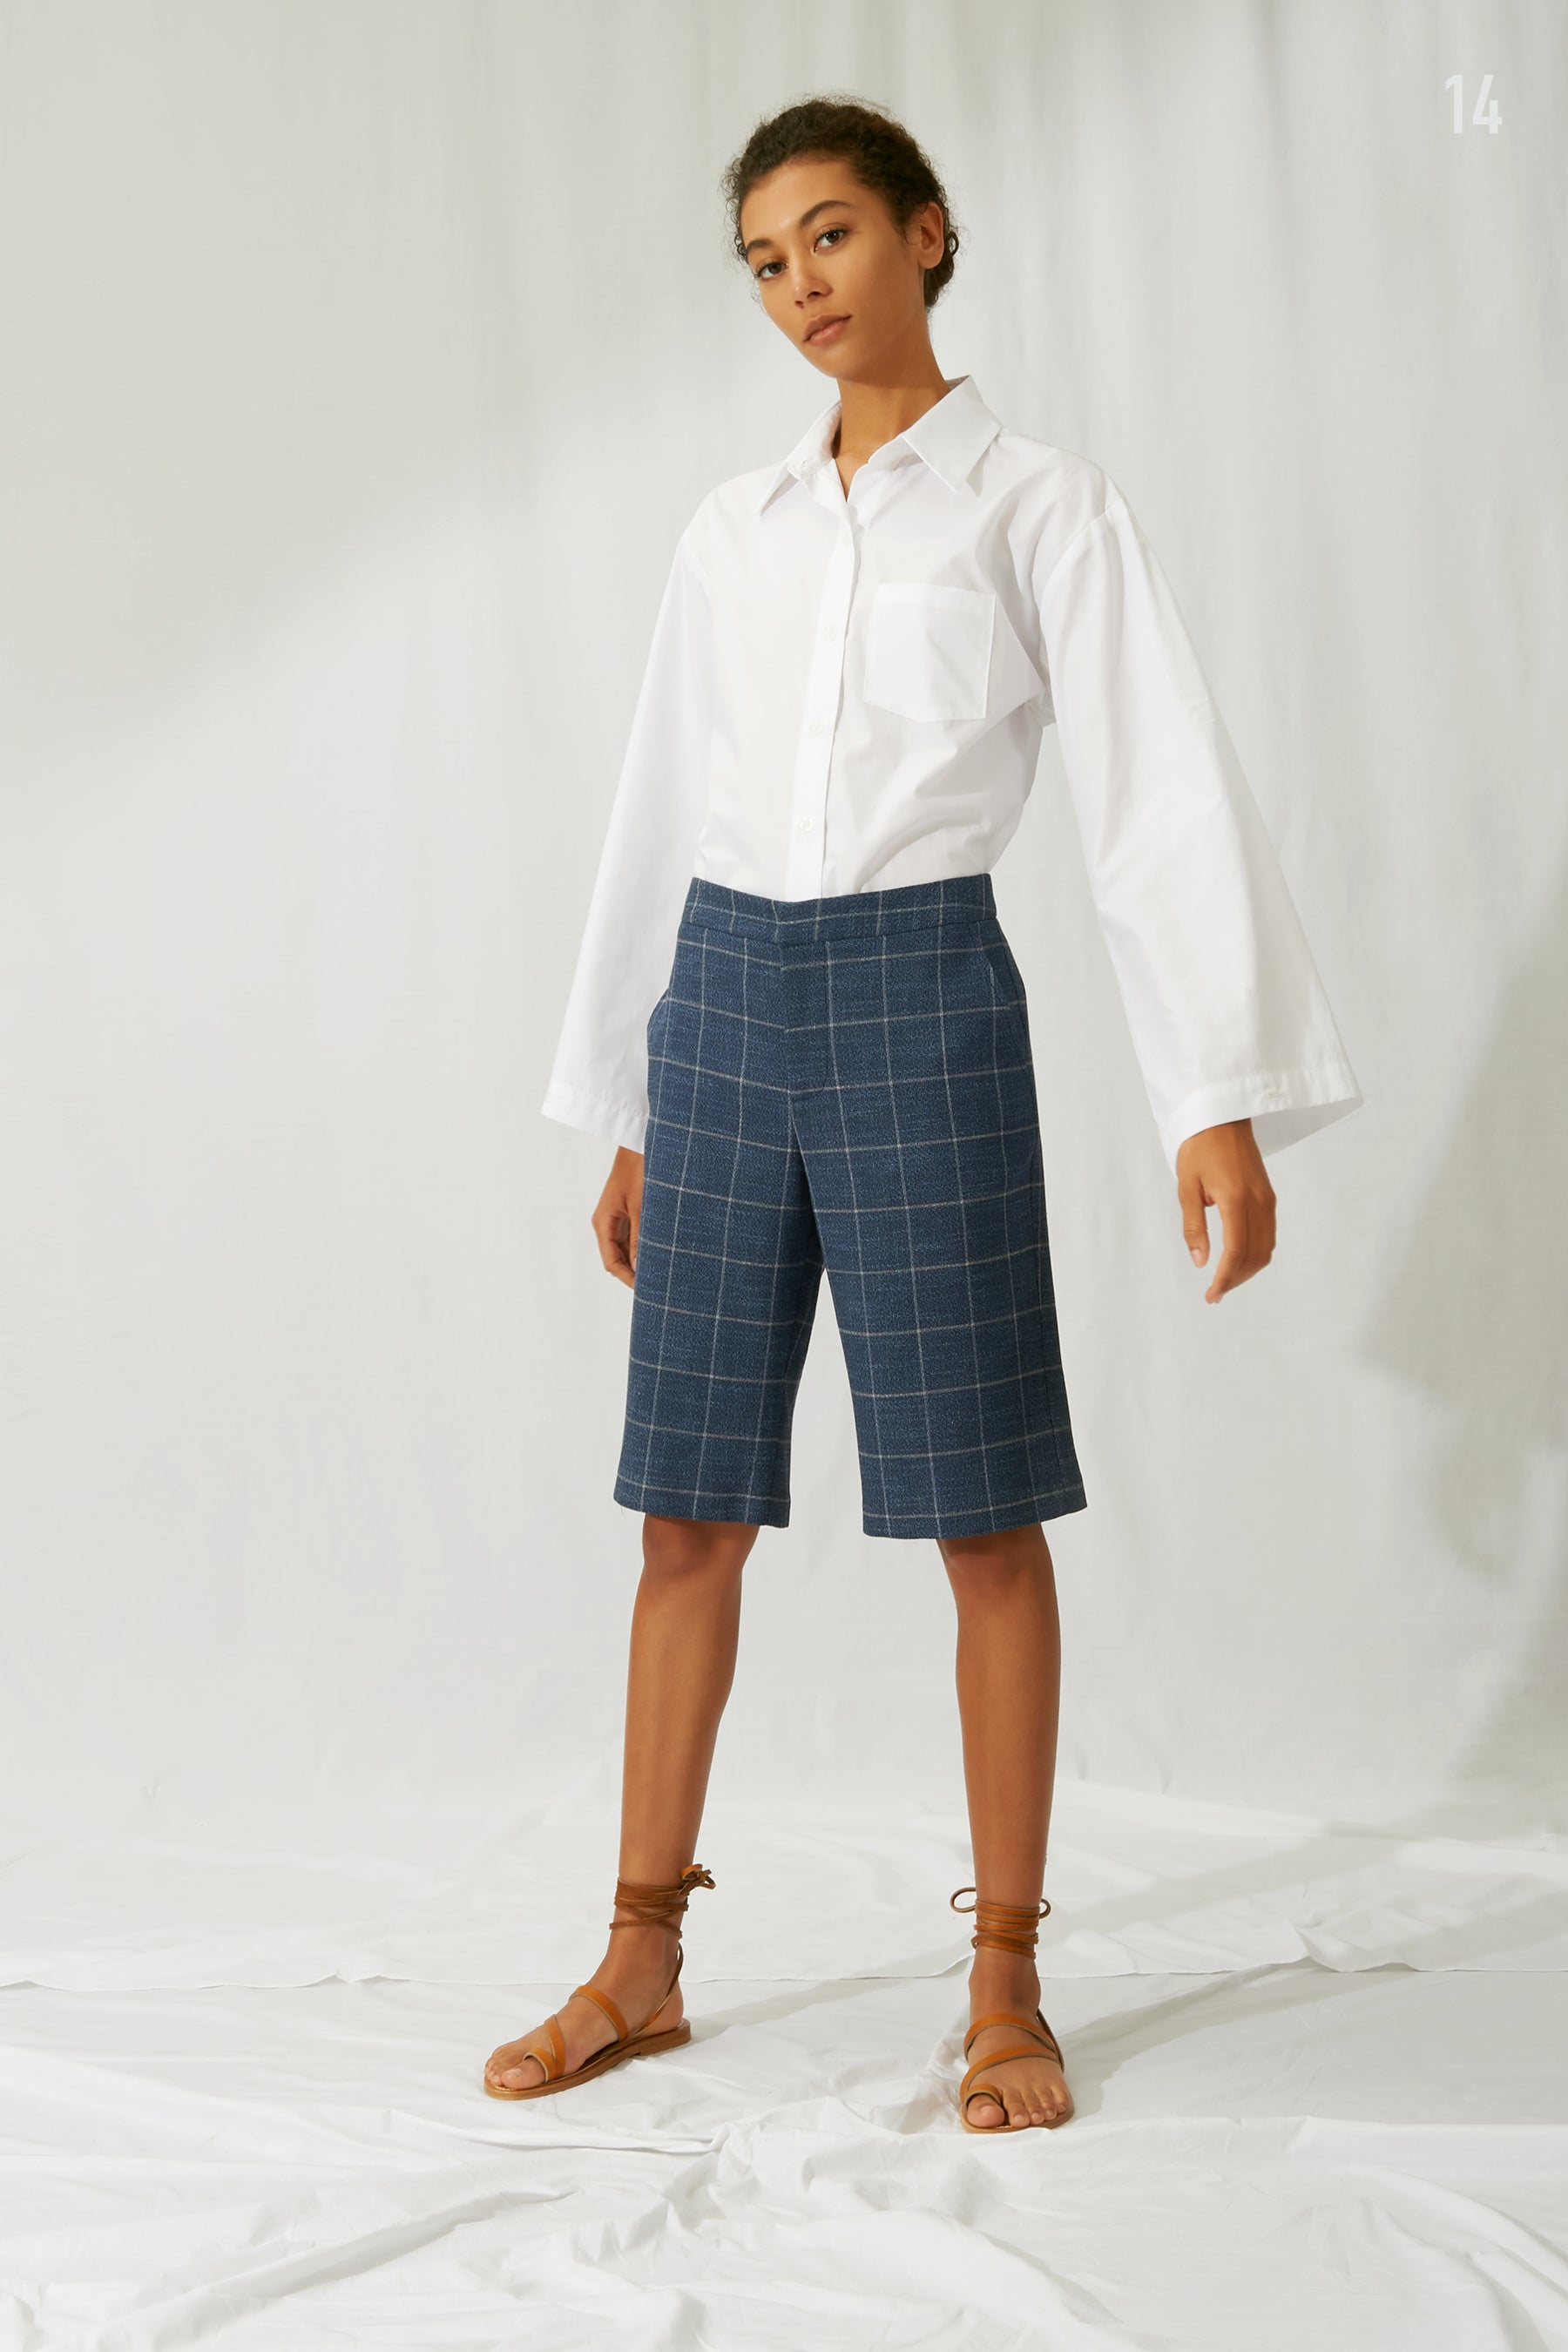 Kal Rieman Spring 2020 Lookbook Look 14